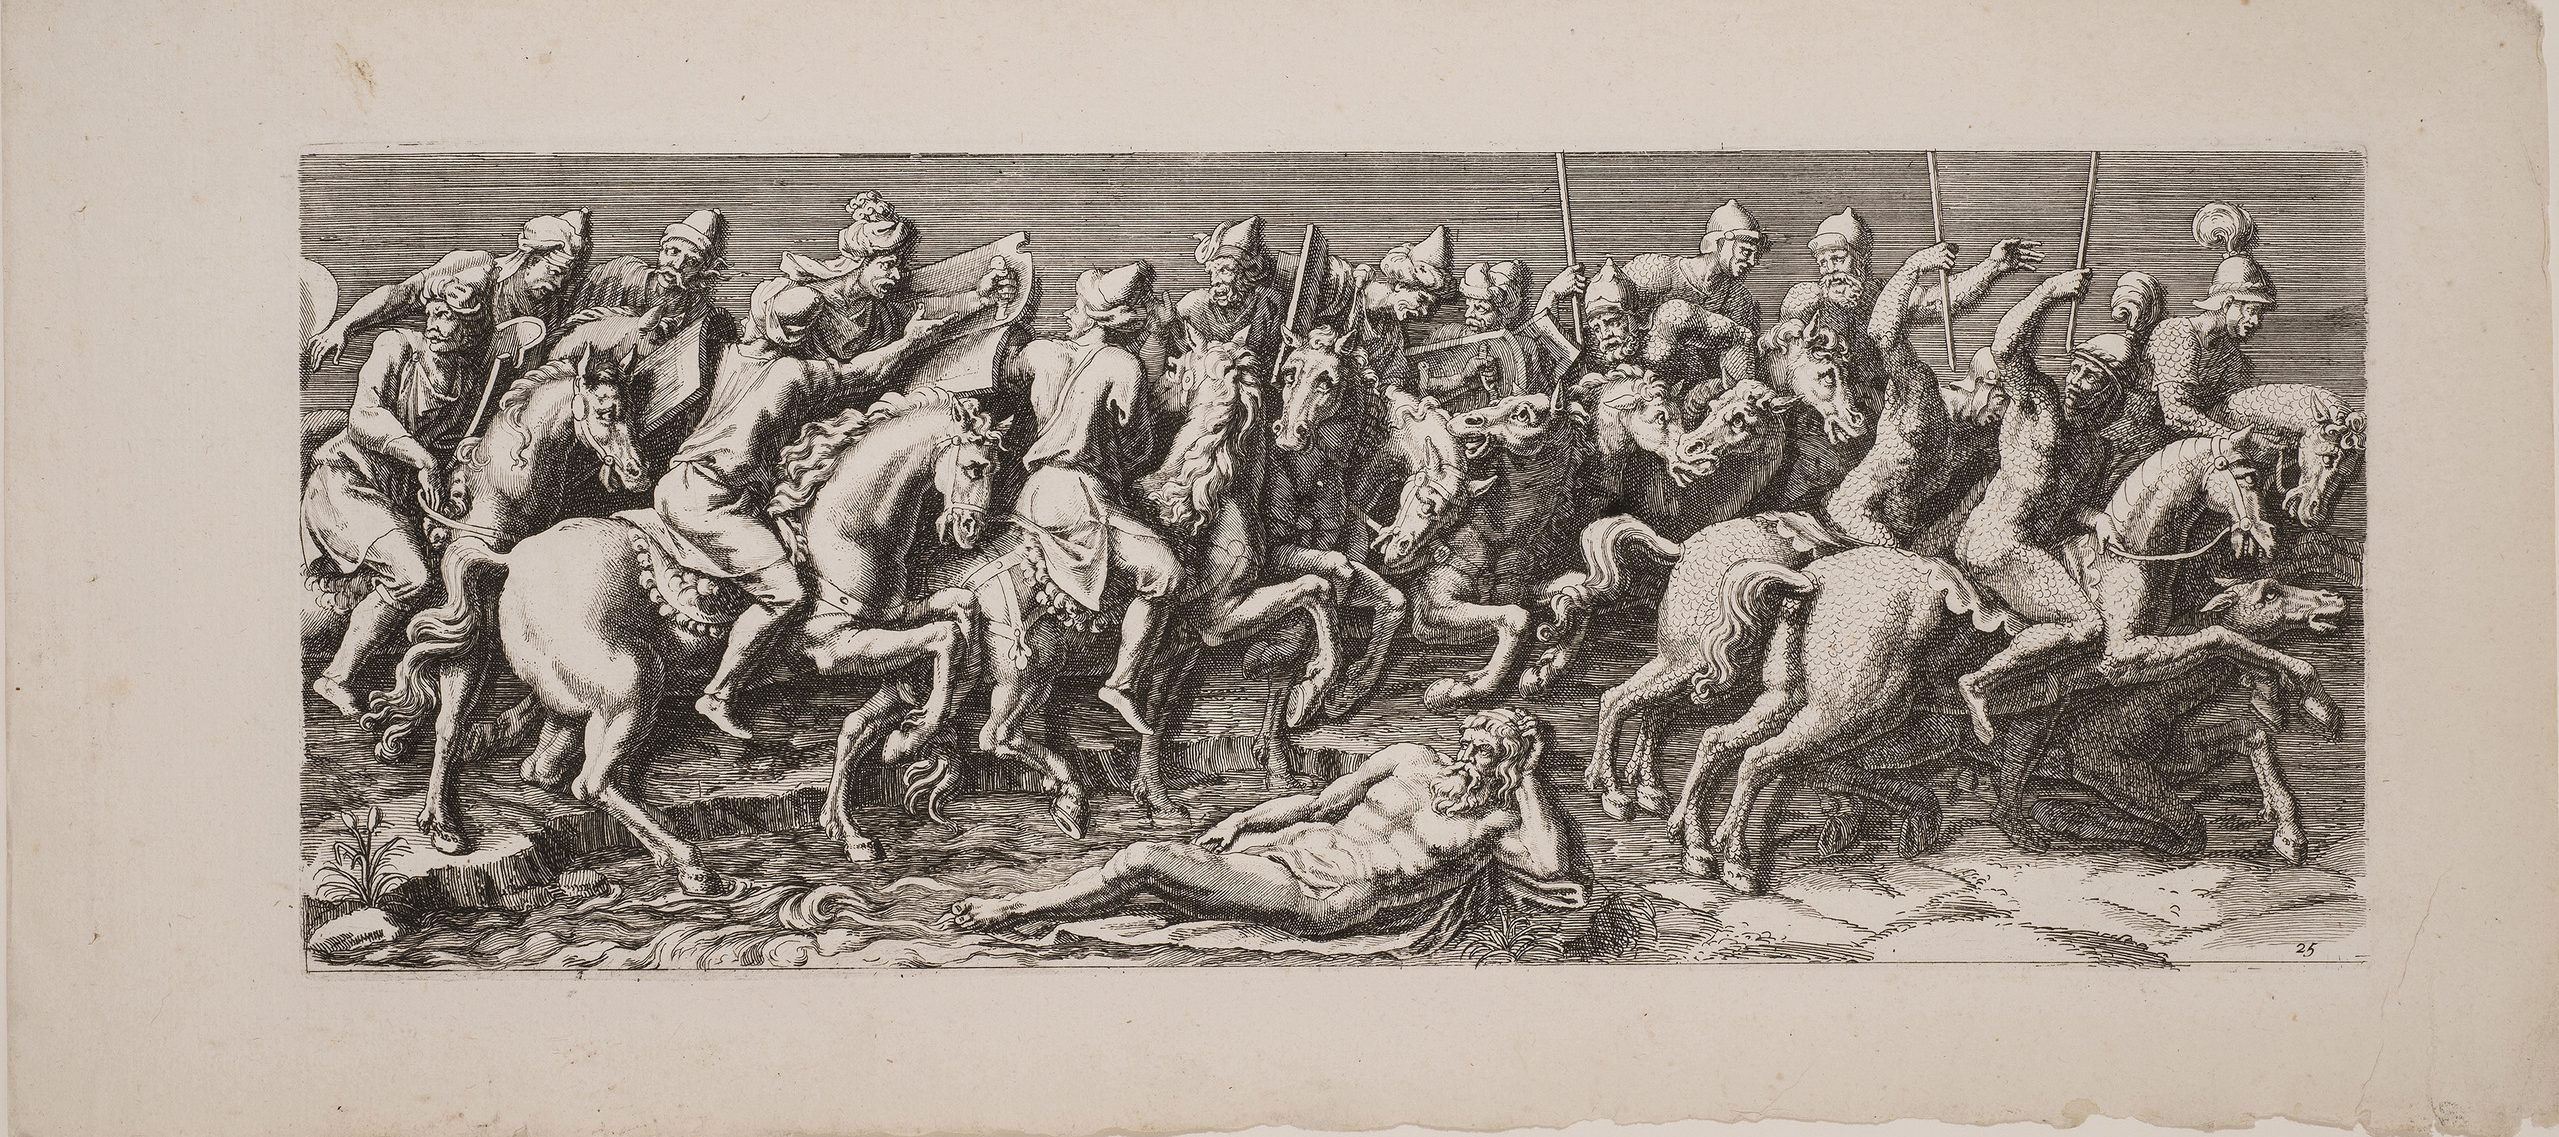 A black-and-white, horizontal print depicts multiple Roman-style male figures on horseback. They hold weapons or brass musical instruments and process, somewhat chaotically, towards the viewer's right.